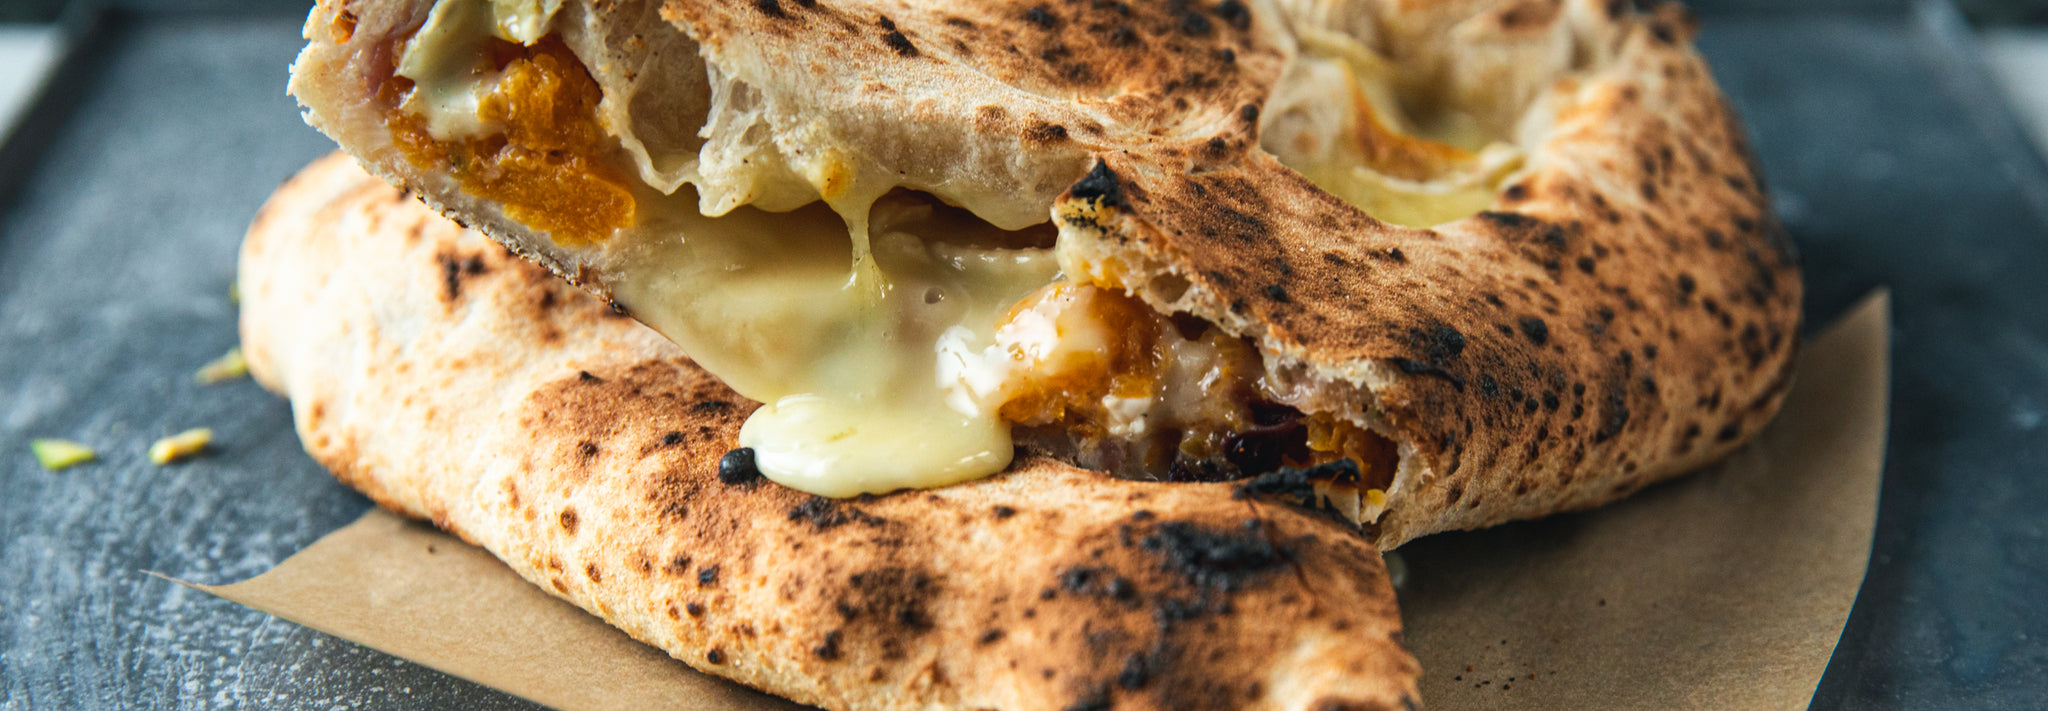 Camembert & Stuffing Calzone